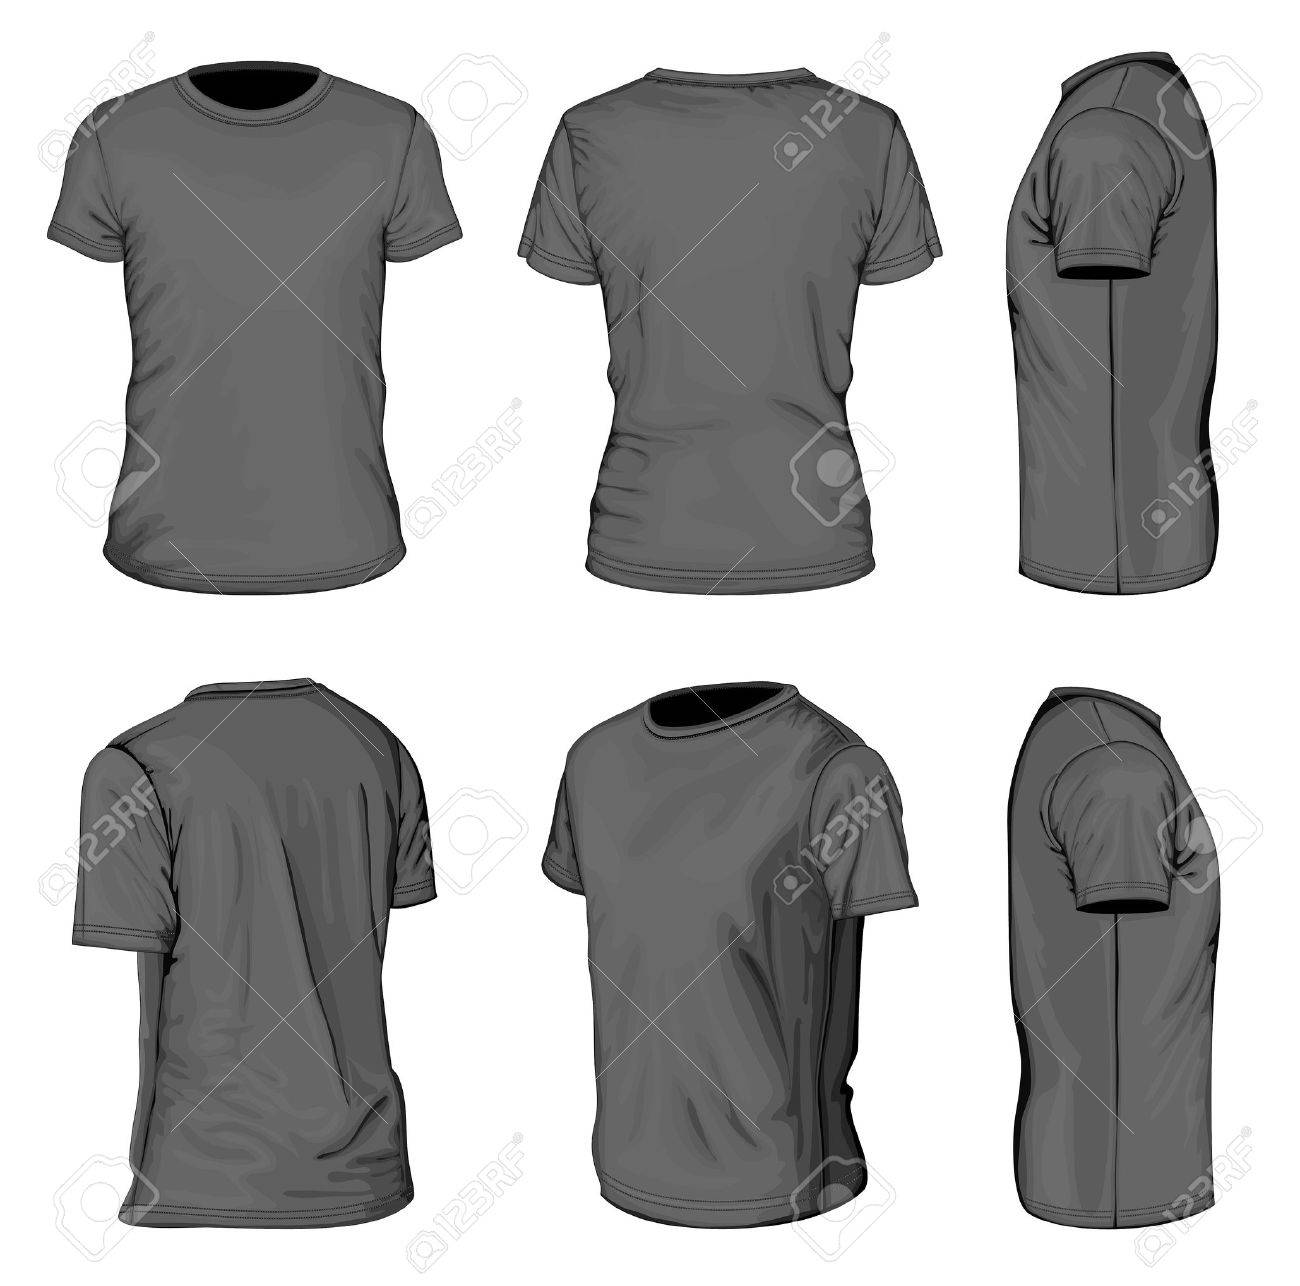 Black t shirt design template - Men S Black Short Sleeve T Shirt Design Templates Stock Vector 19883909